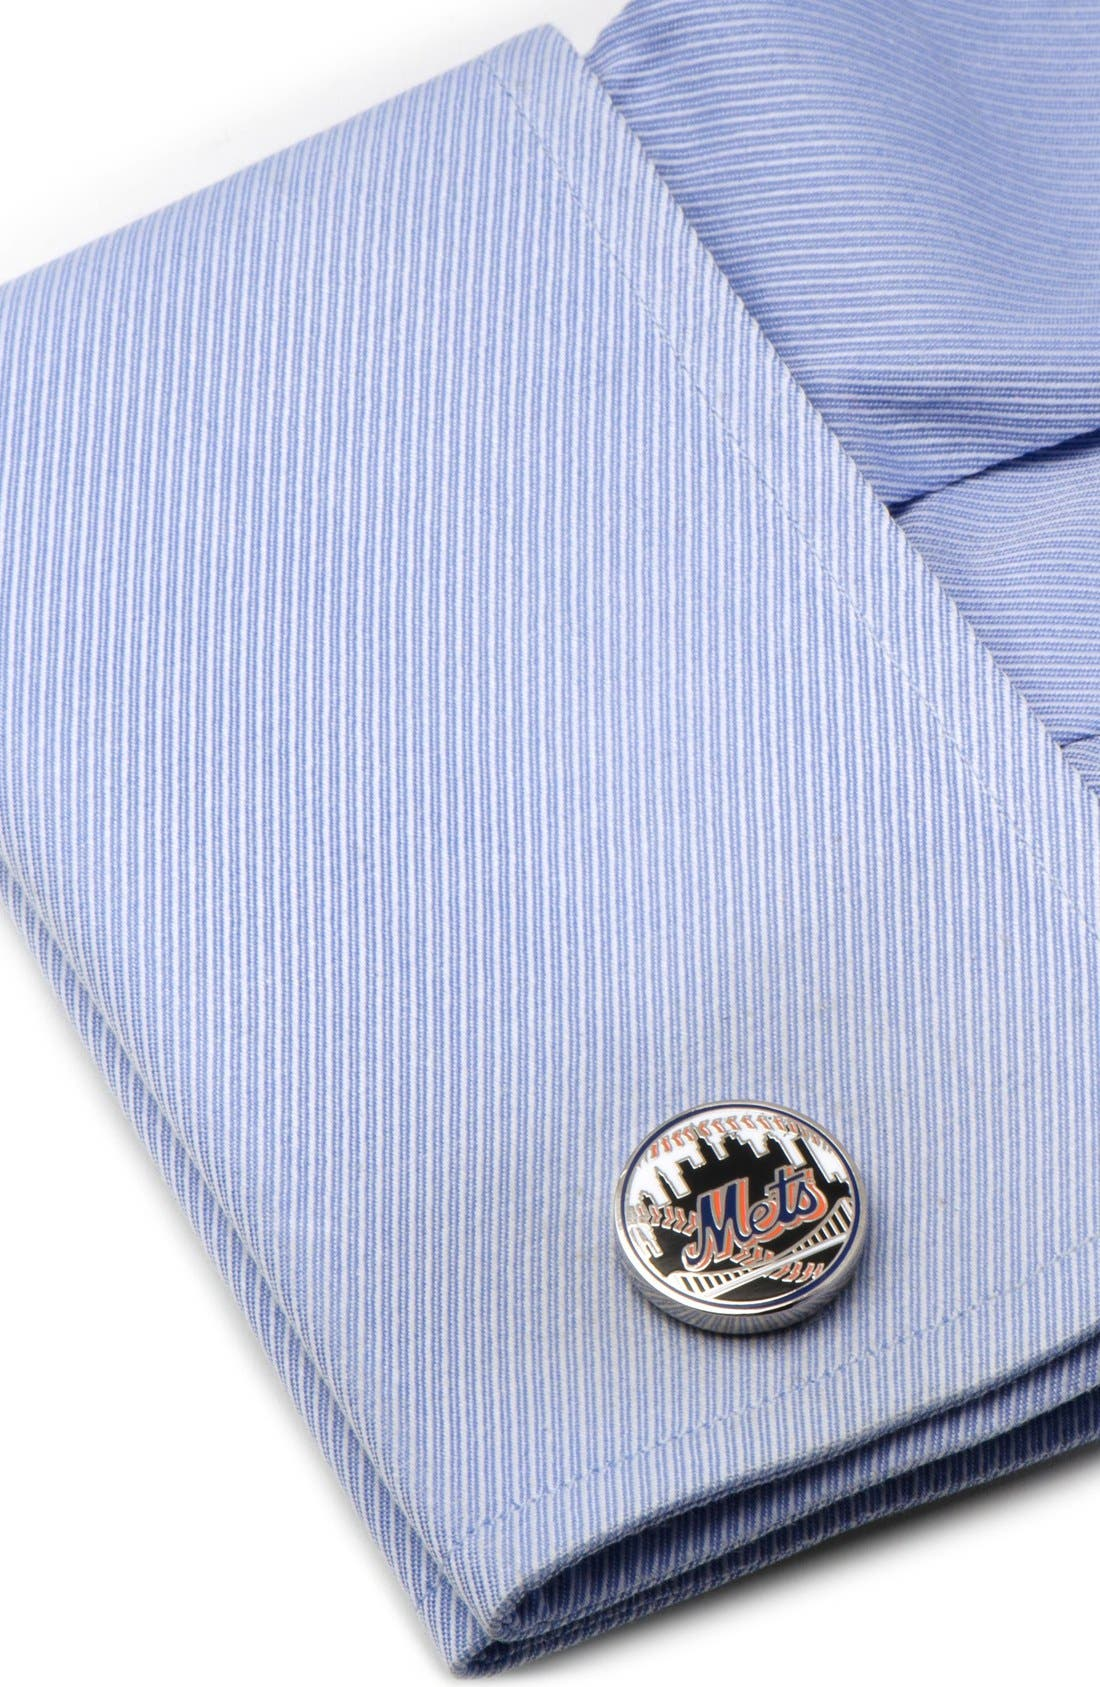 New York Mets Cuff Links,                             Alternate thumbnail 3, color,                             001